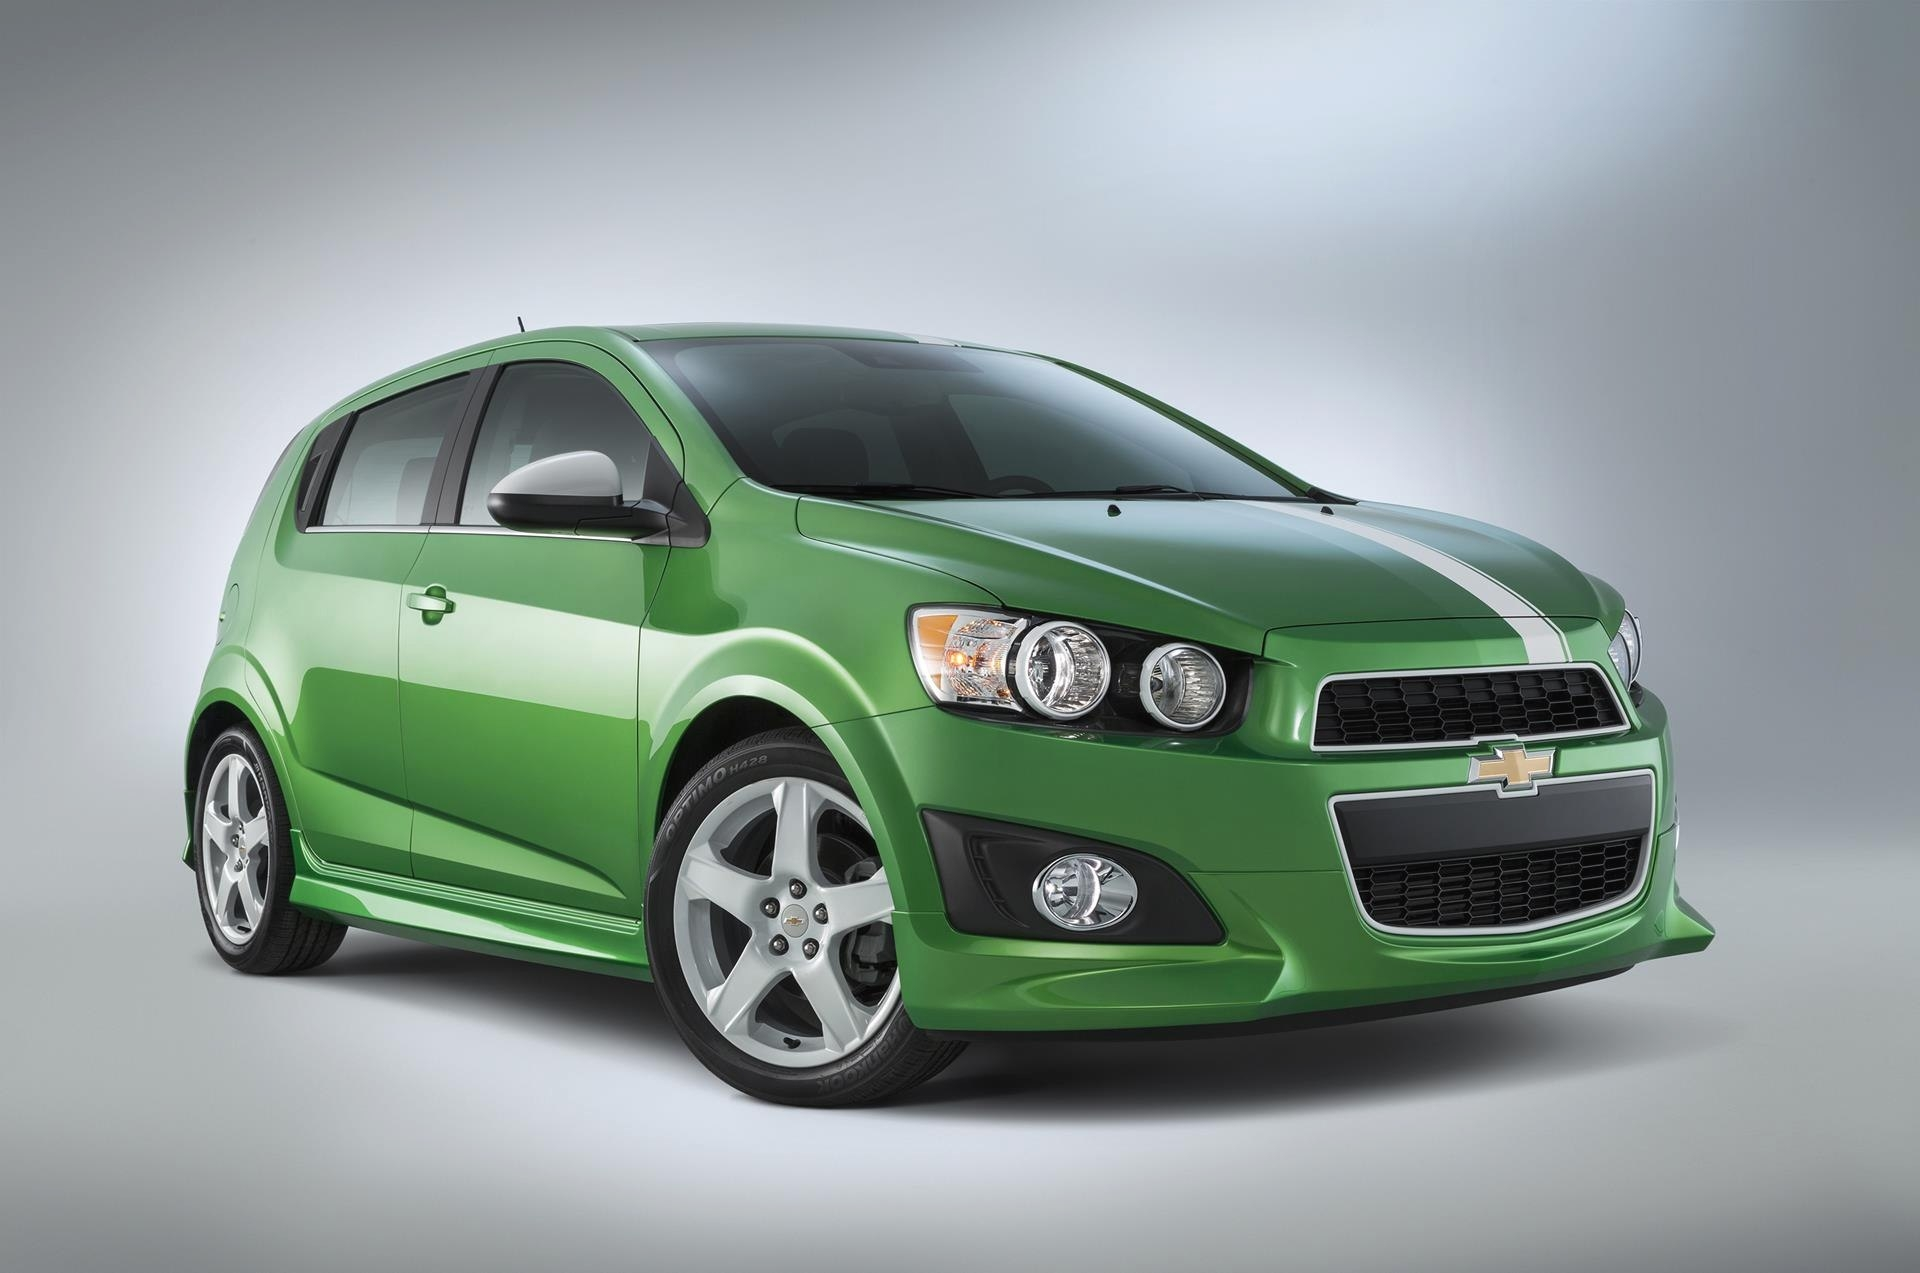 73 A 2020 Chevy Sonic Exterior and Interior